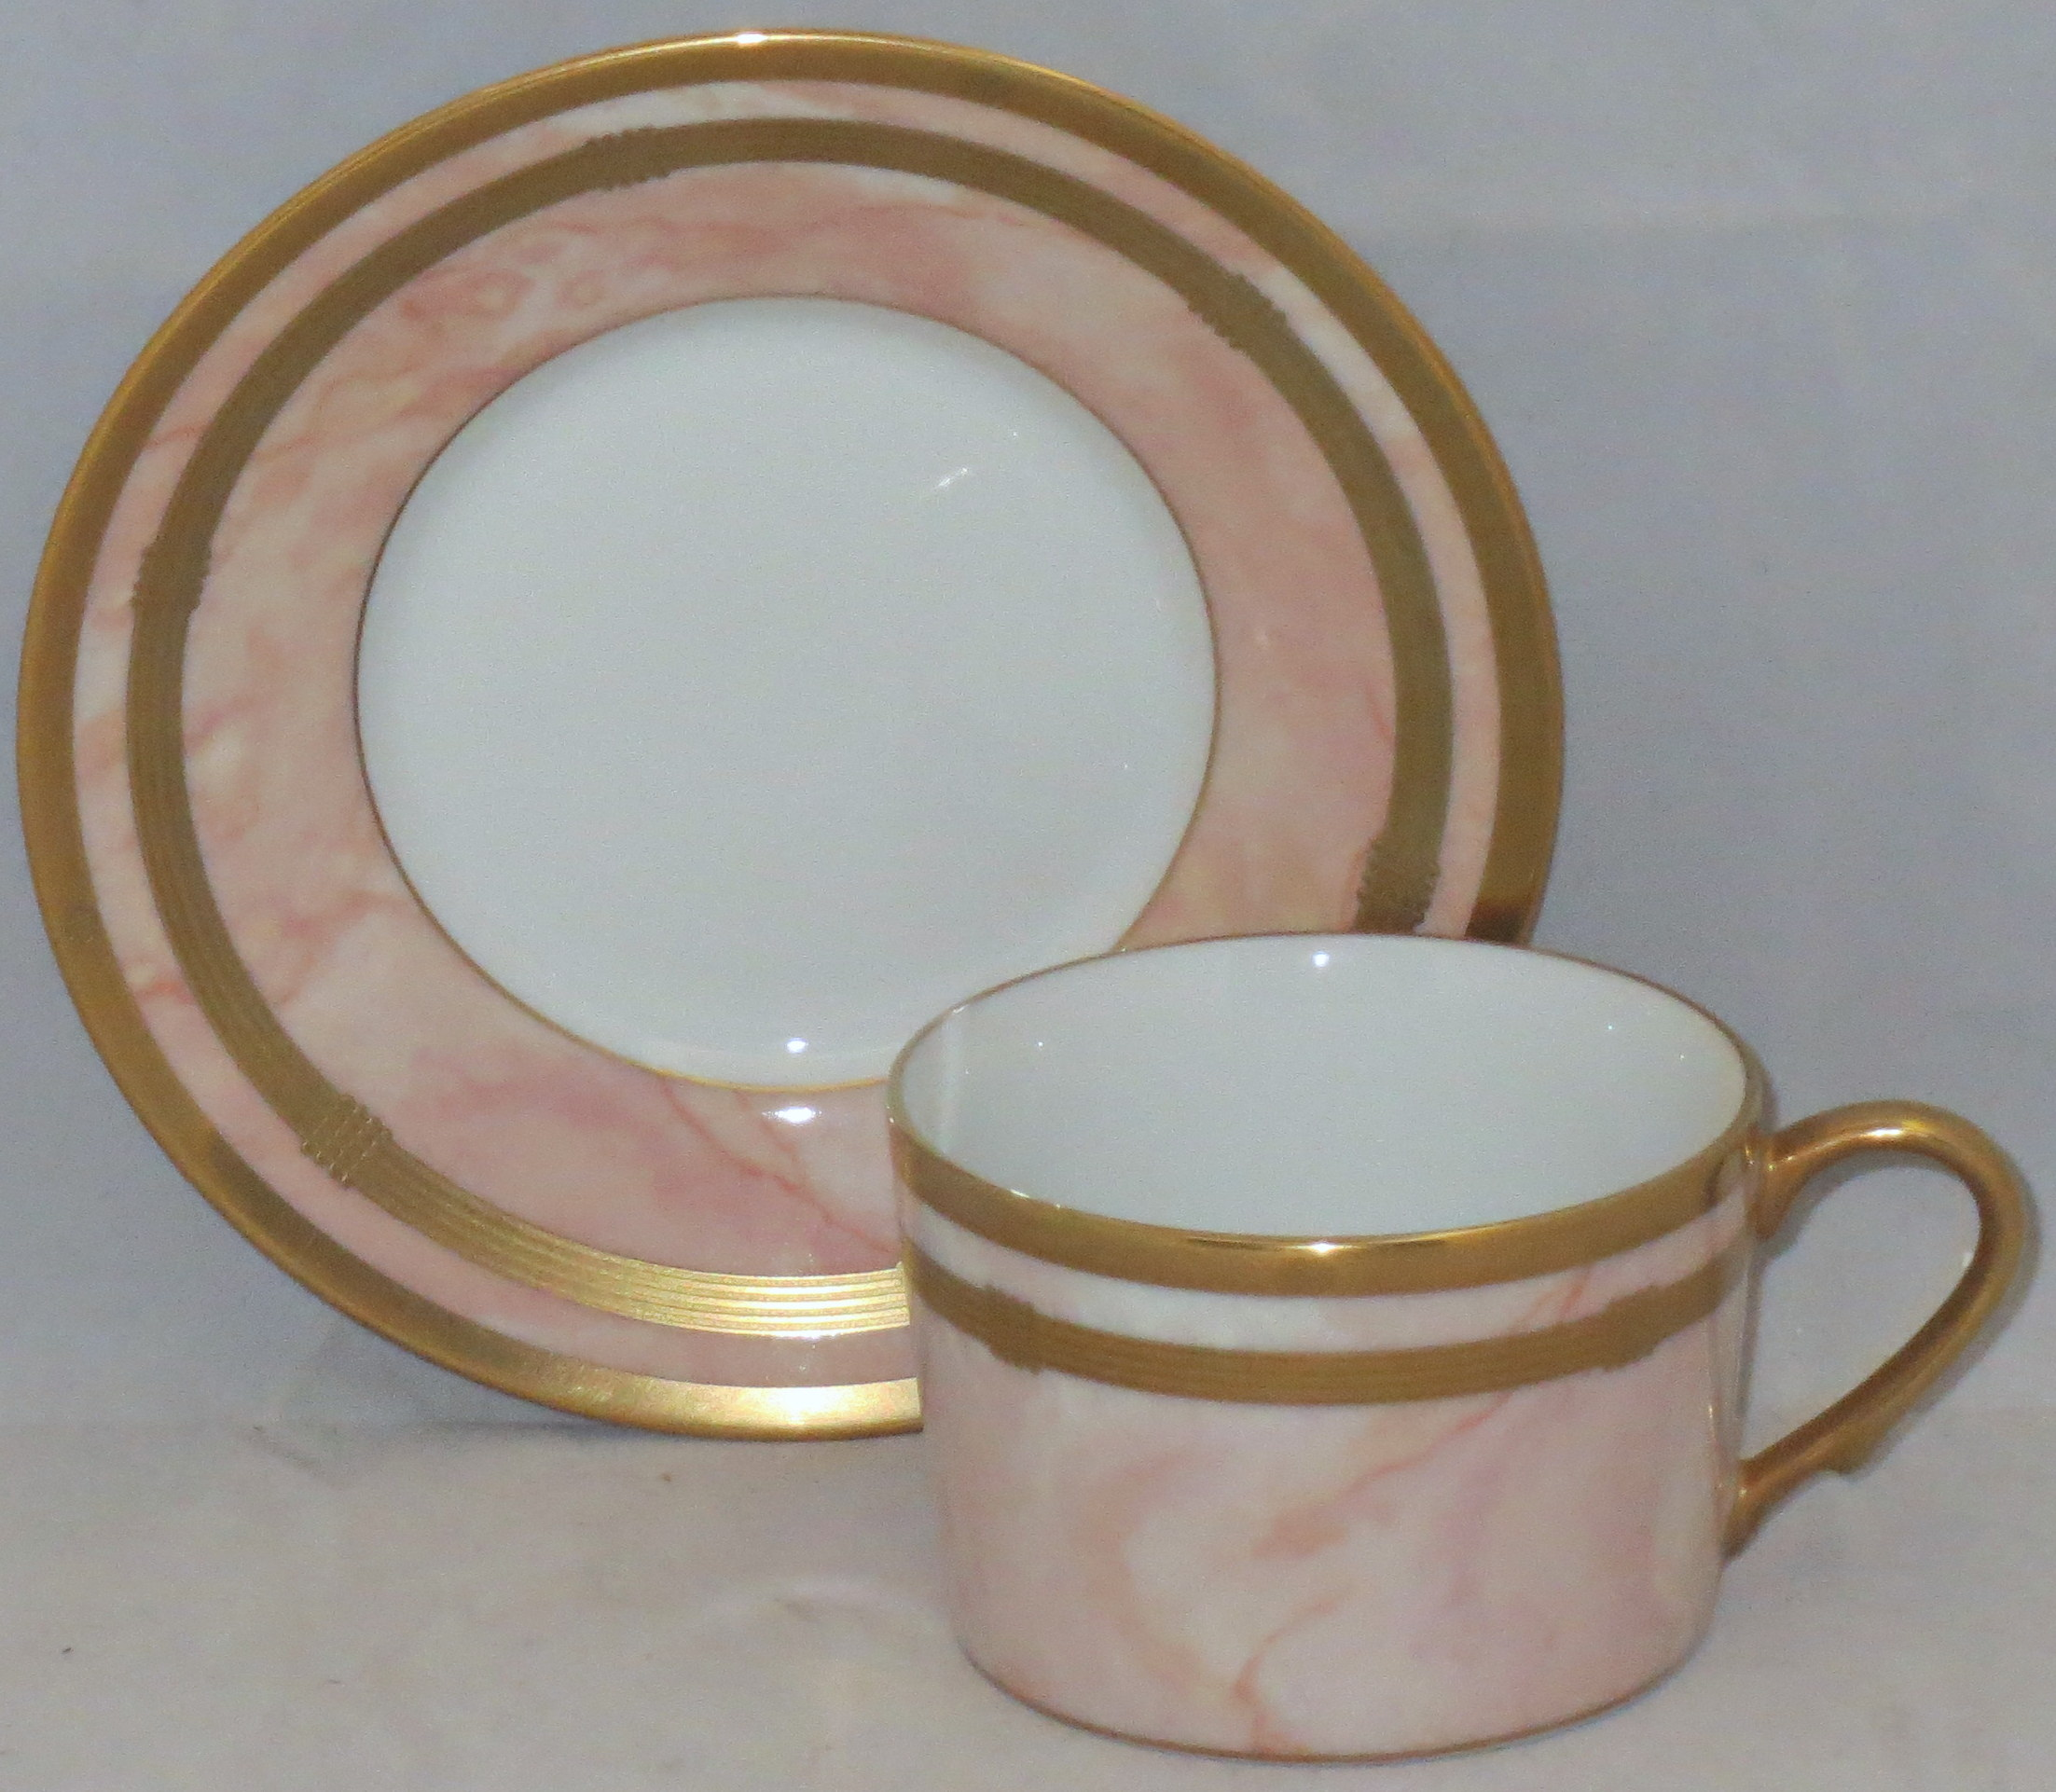 Christian Dior Gaudron-Marbre Rose 5 Piece Place Setting